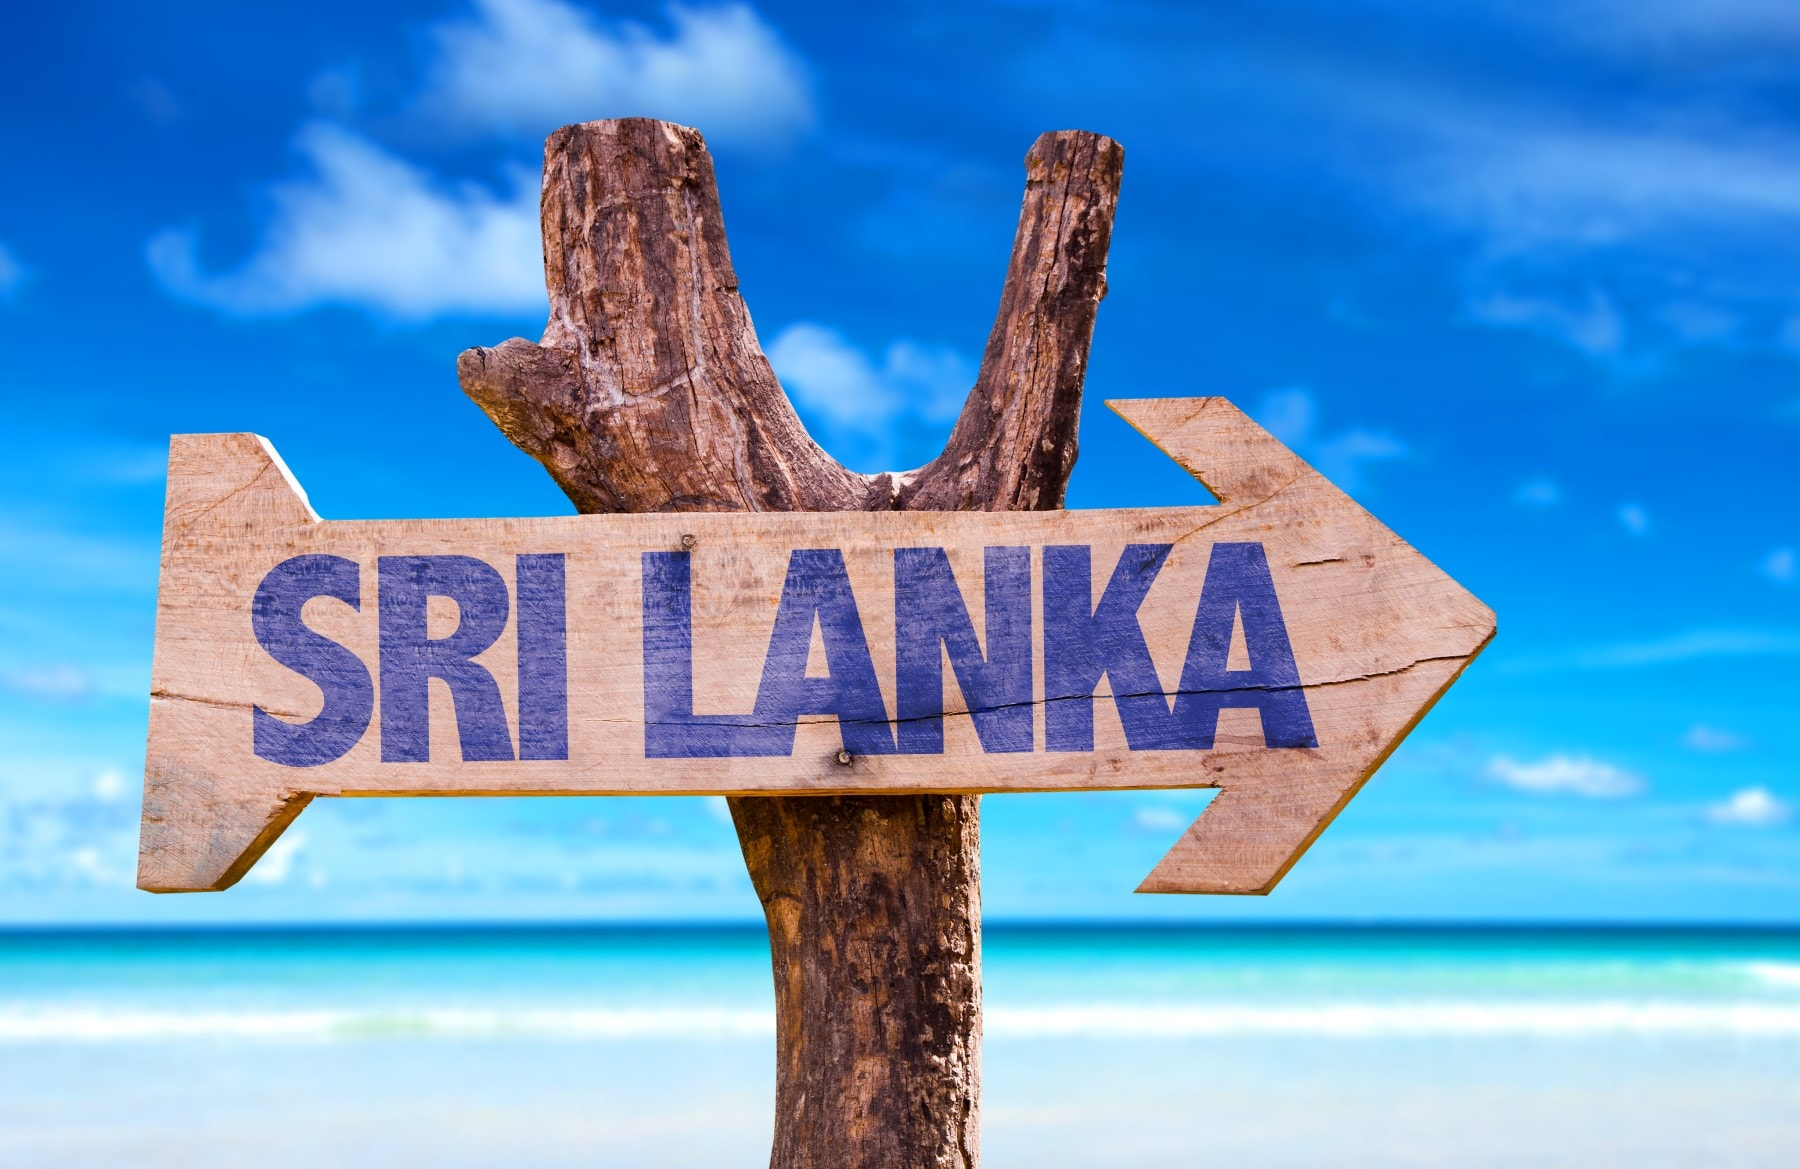 25 Things to do in Sri Lanka